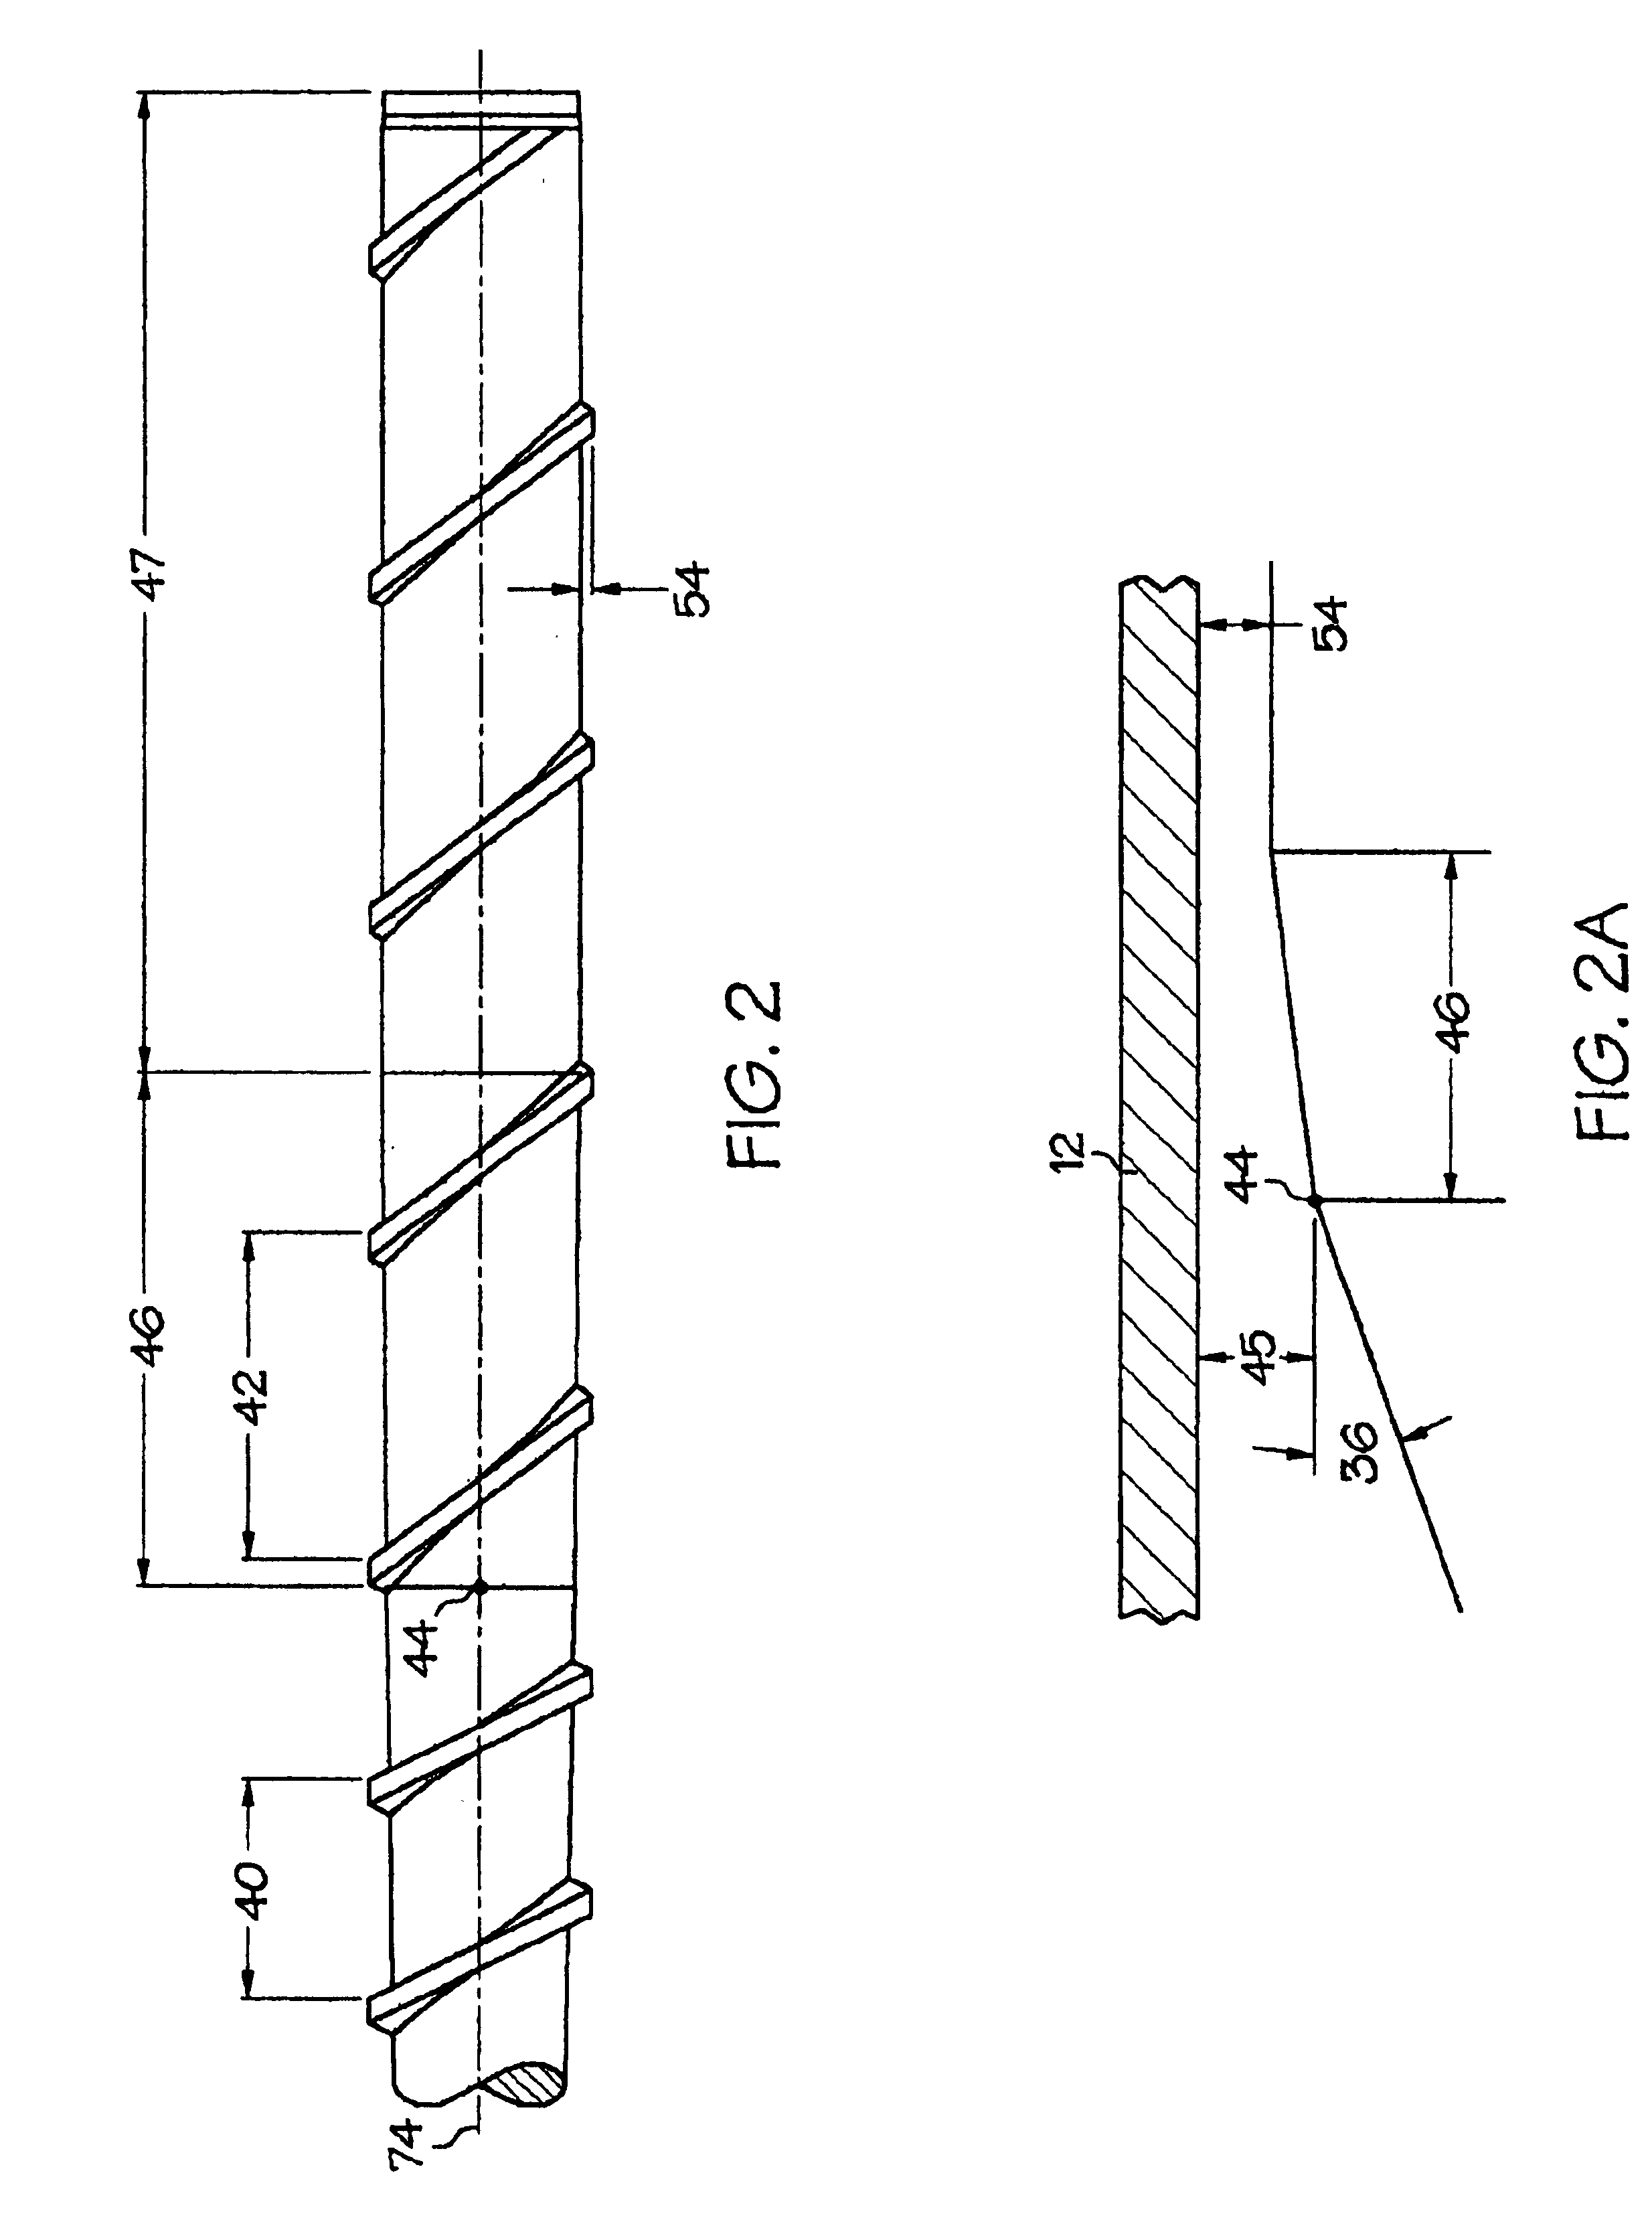 Patent Us6752528 Plasticating Screw For Efficient Melting And Instrumentation Amplifier Circuit Diagram Drawing